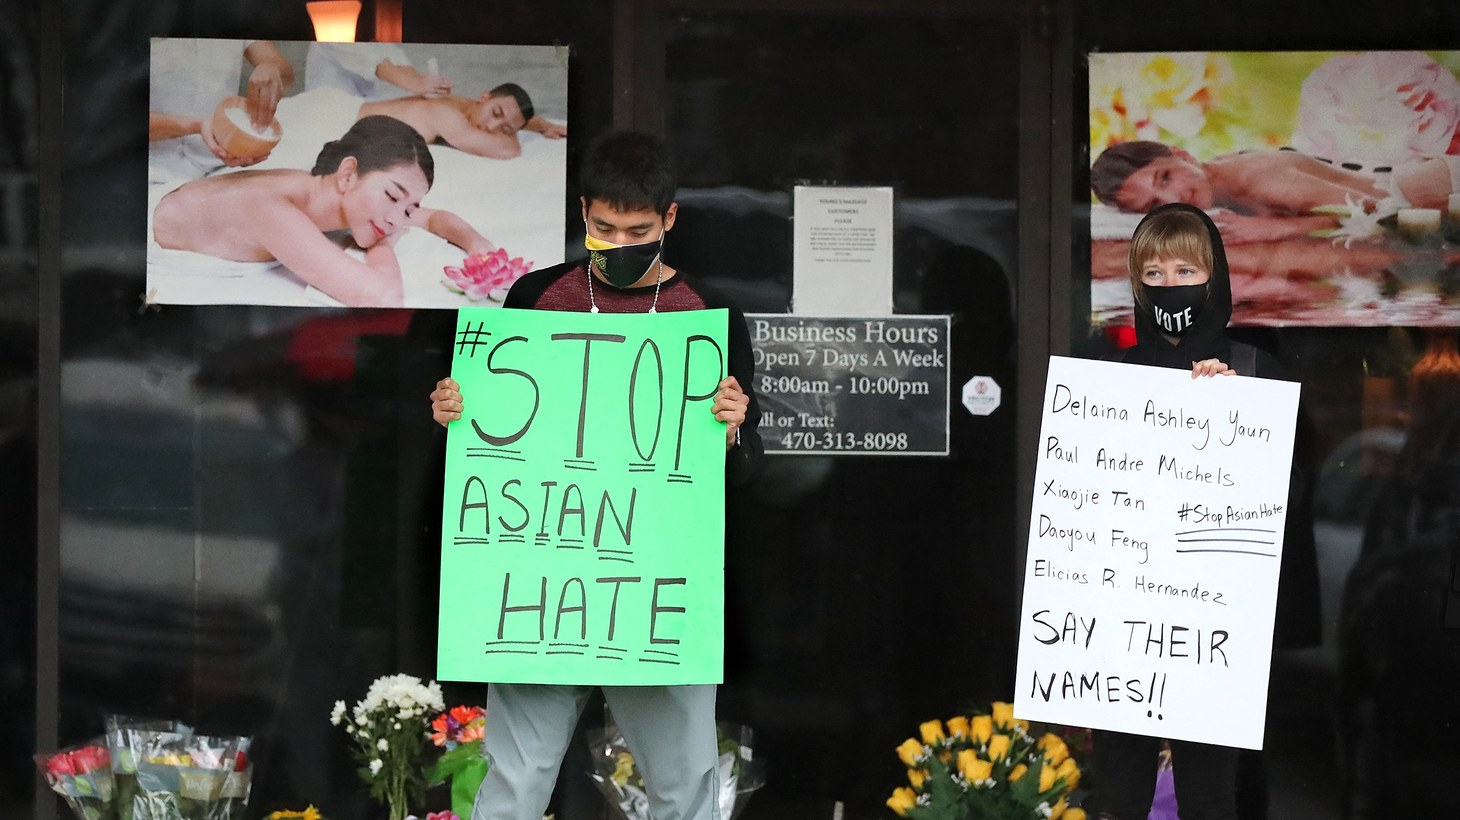 After dropping off flowers, Jesus Estrella, left, and Shelby S., right, stand in support of the Asian and Hispanic community outside Young's Asian Massage, where four people were killed on Wednesday, March 17, 2021, in Acworth, Georgia. At least eight people were found dead at three different spas in the Atlanta area Tuesday by suspected killer Robert Aaron Long.